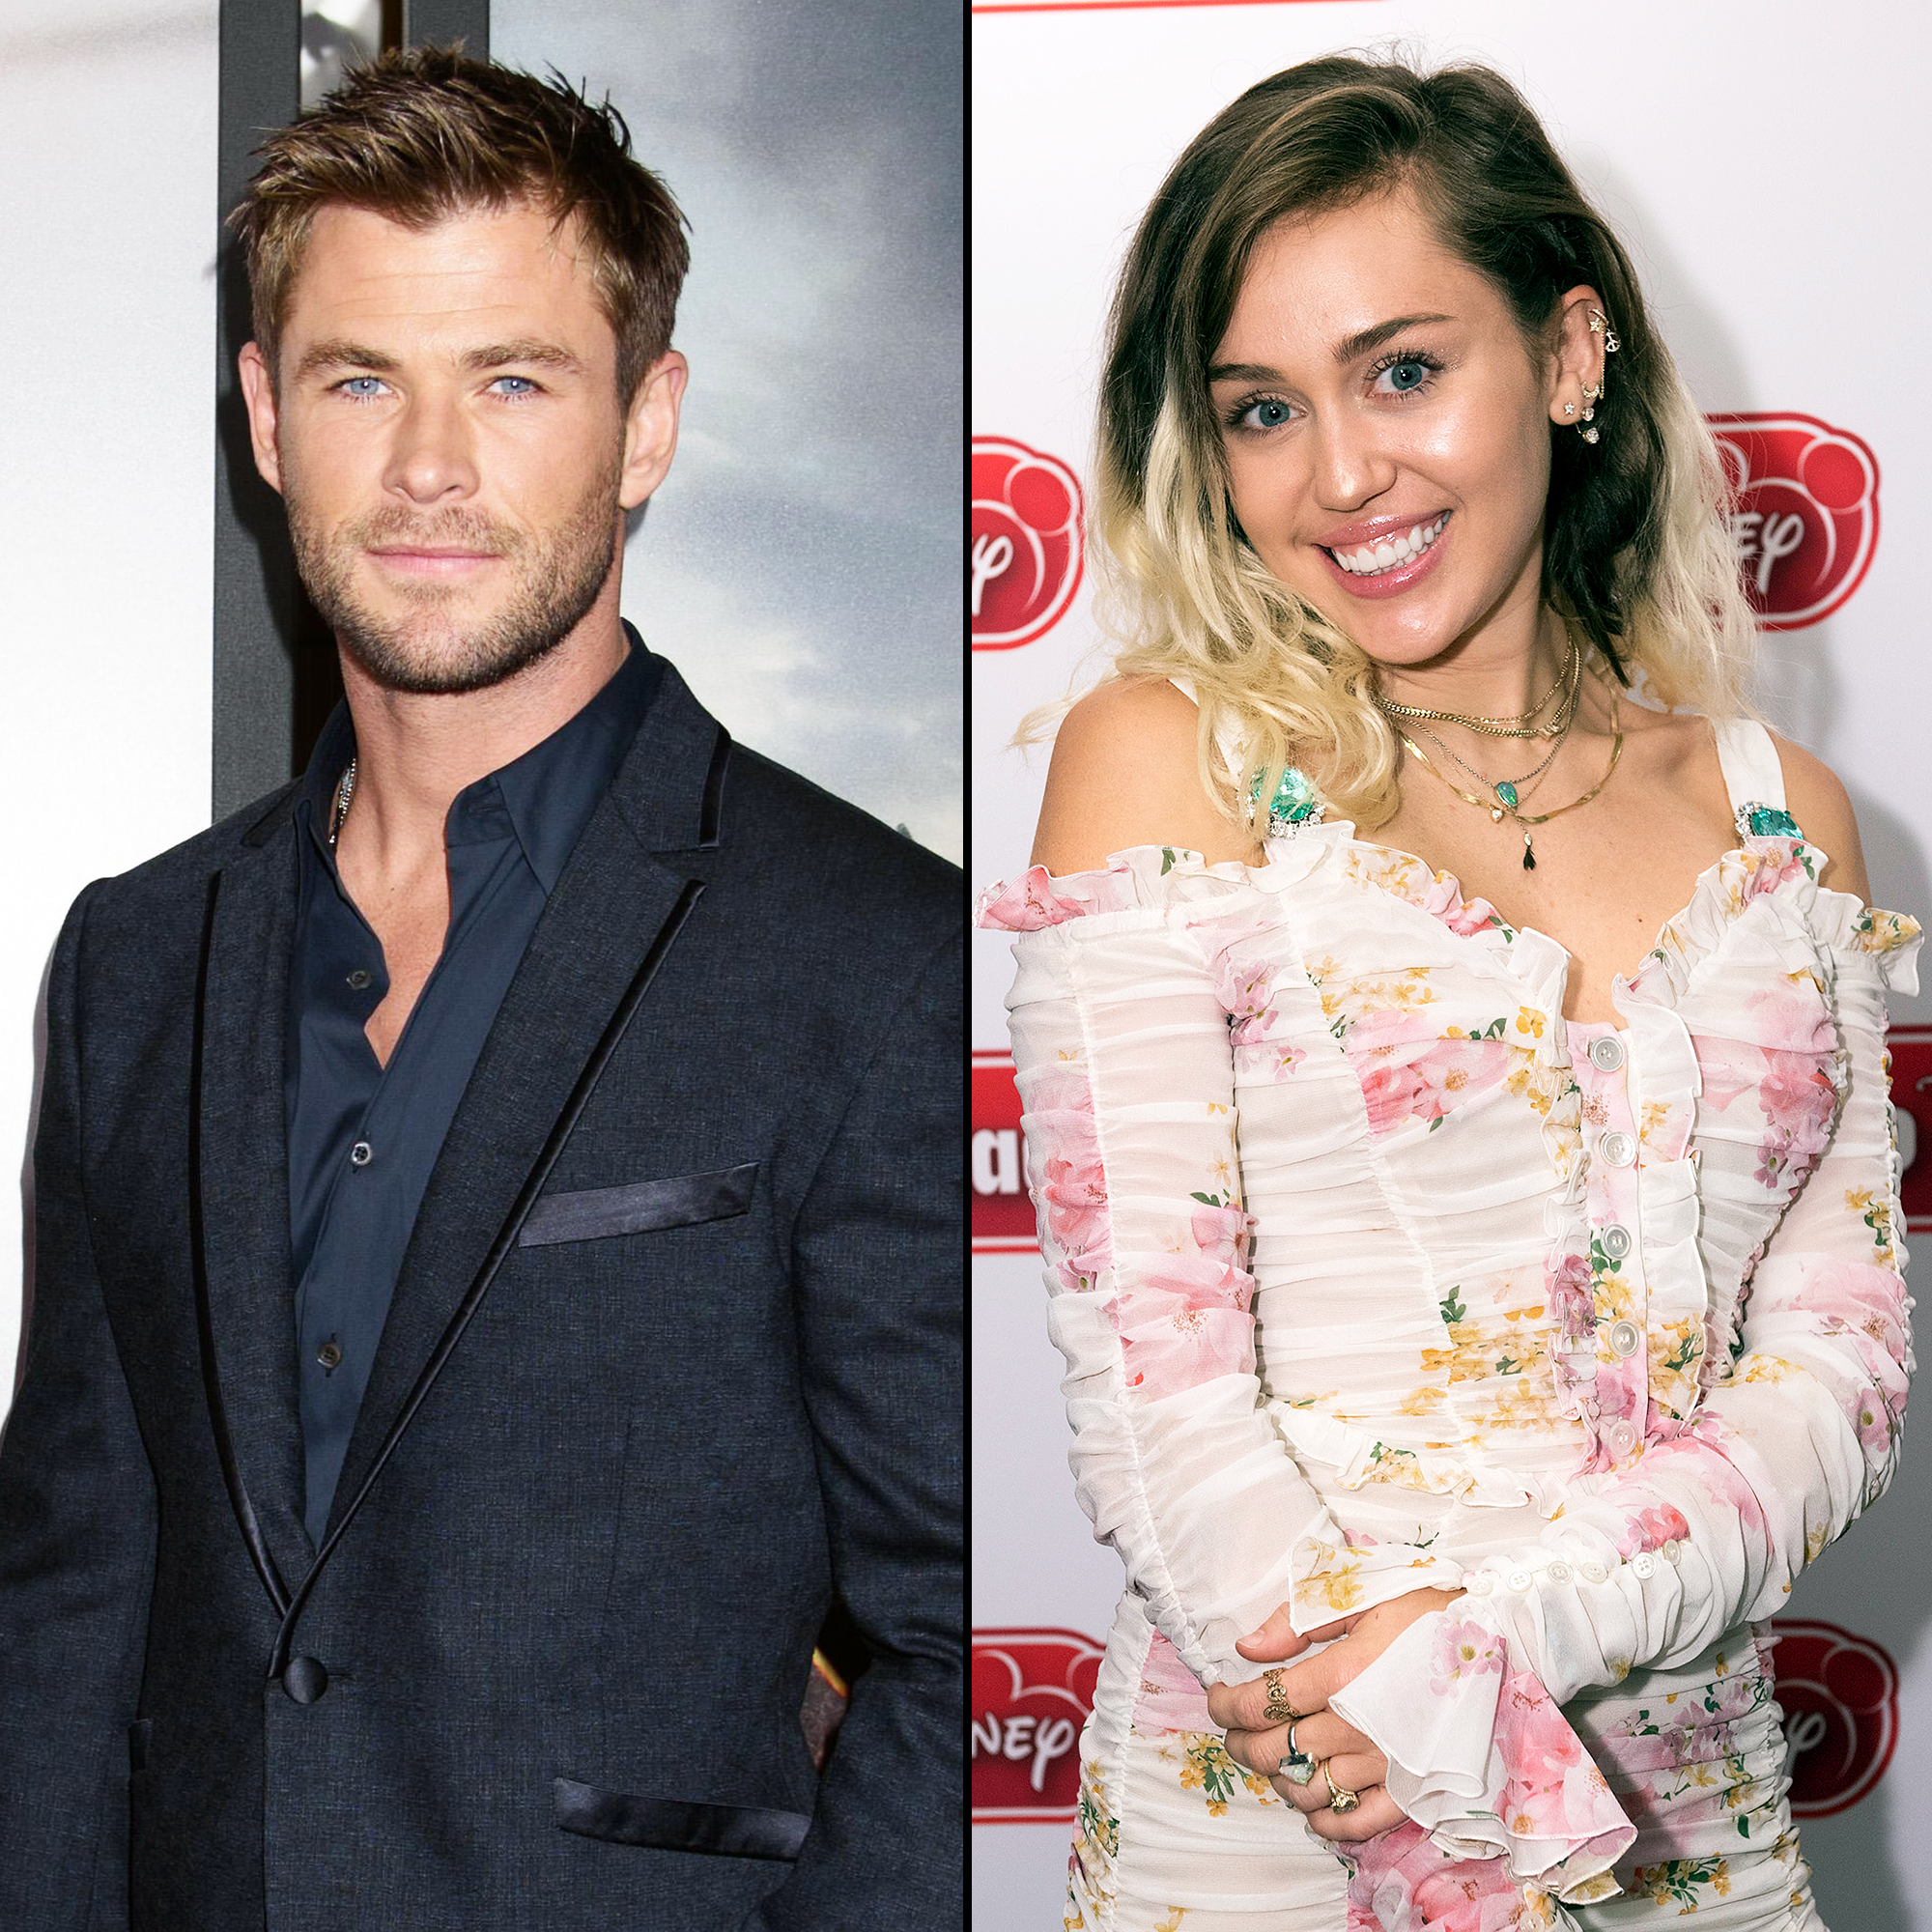 Chris Hemsworth Is Giving Us The Miley Cyrus Performance OF HIS LIFE